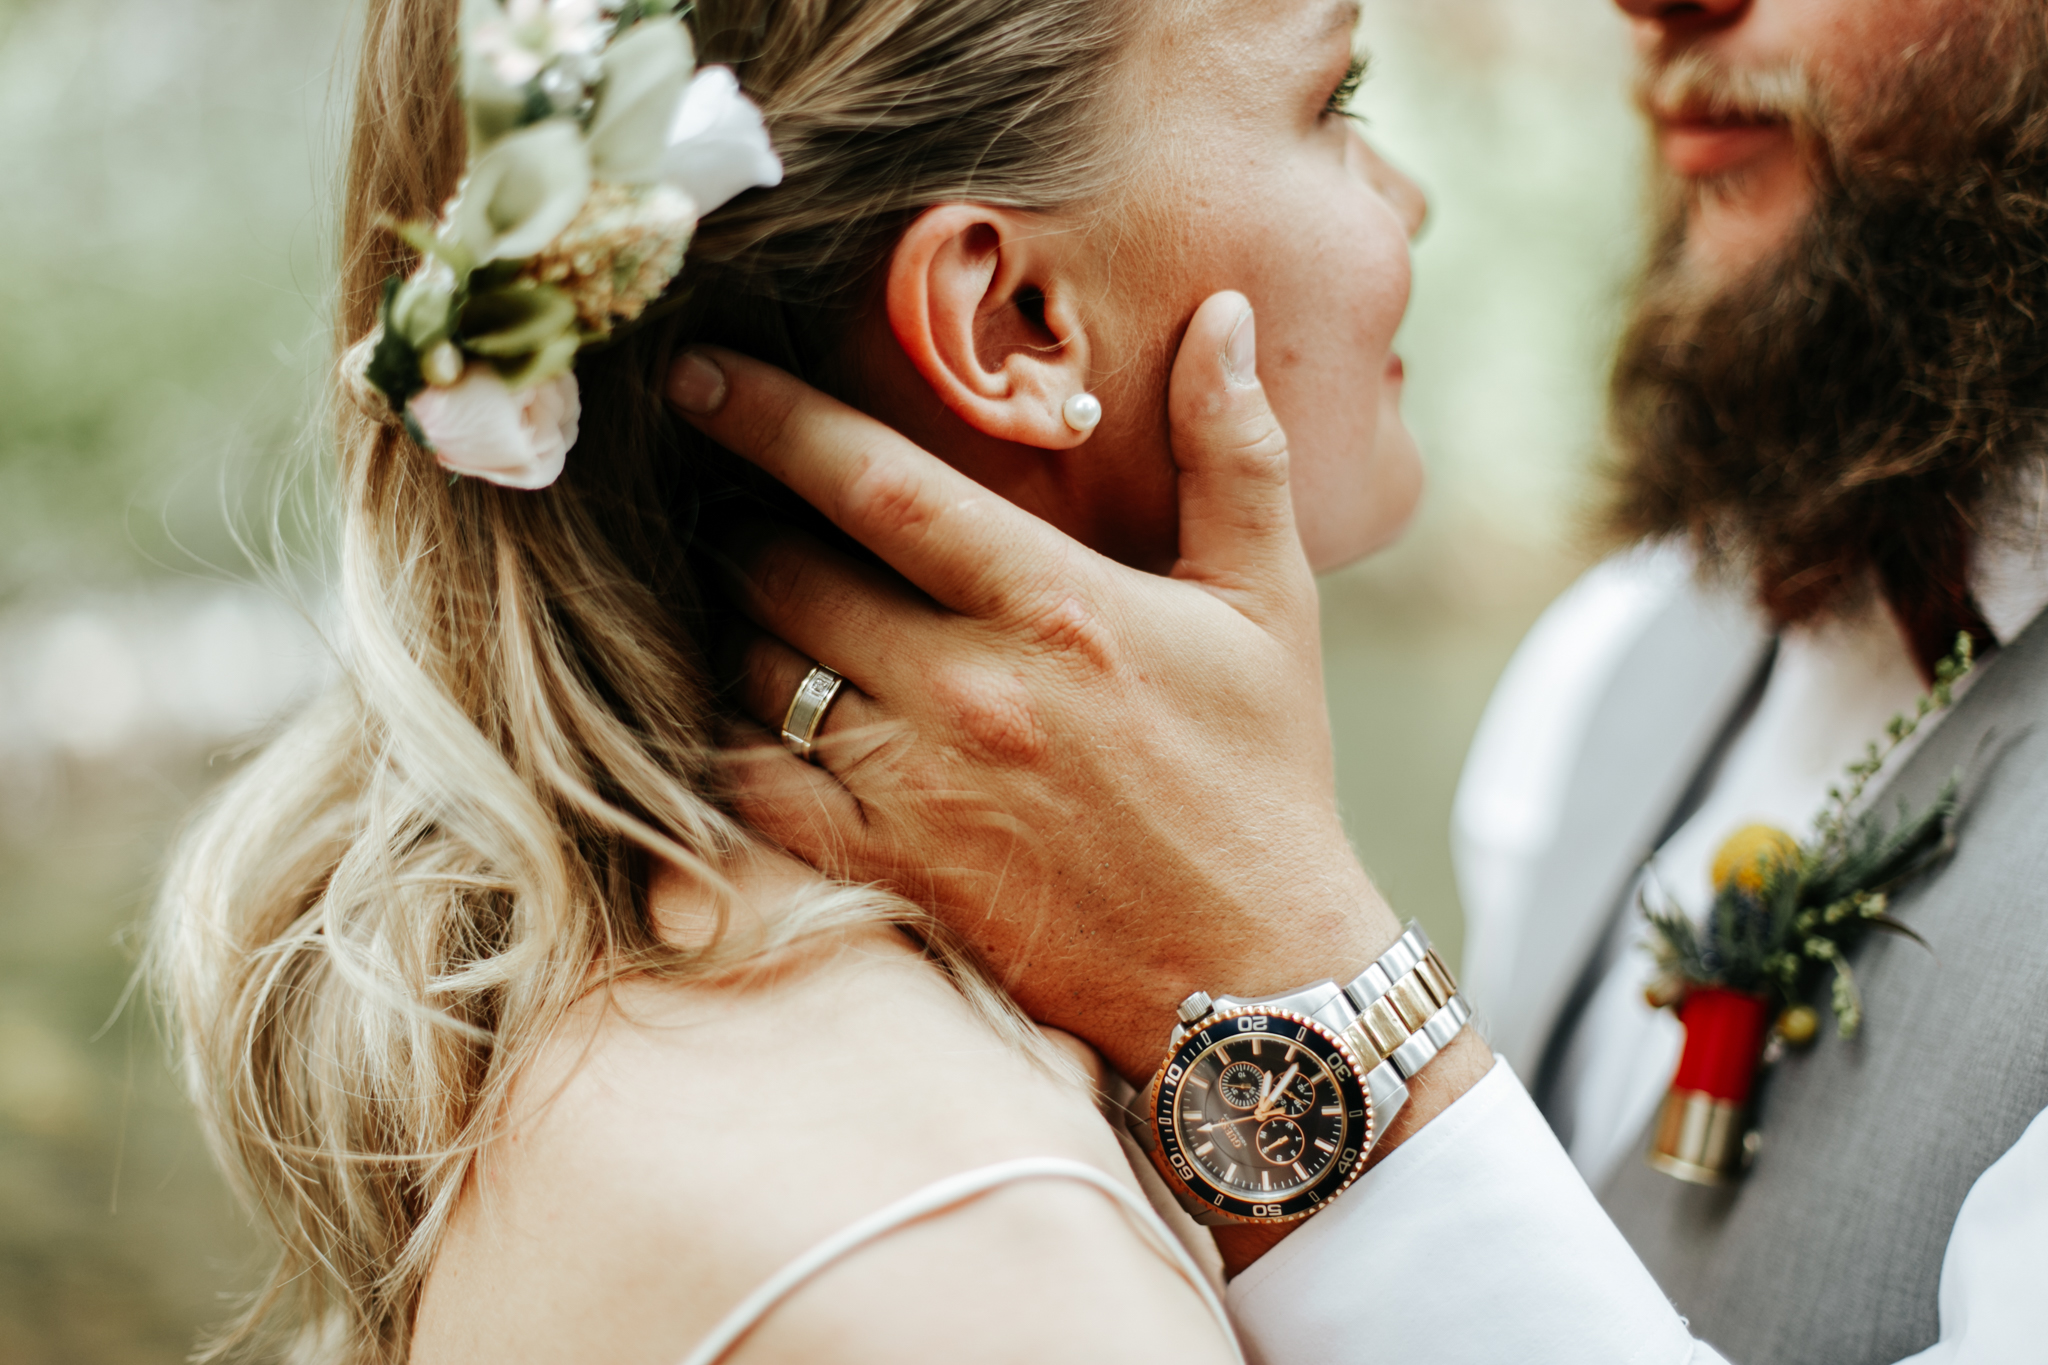 castle-mountain-wedding-photographer-love-and-be-loved-photography-lethbridge-pincher-creek-crowsnest-pass-yannick-rylee-photo-image-picture-130.jpg